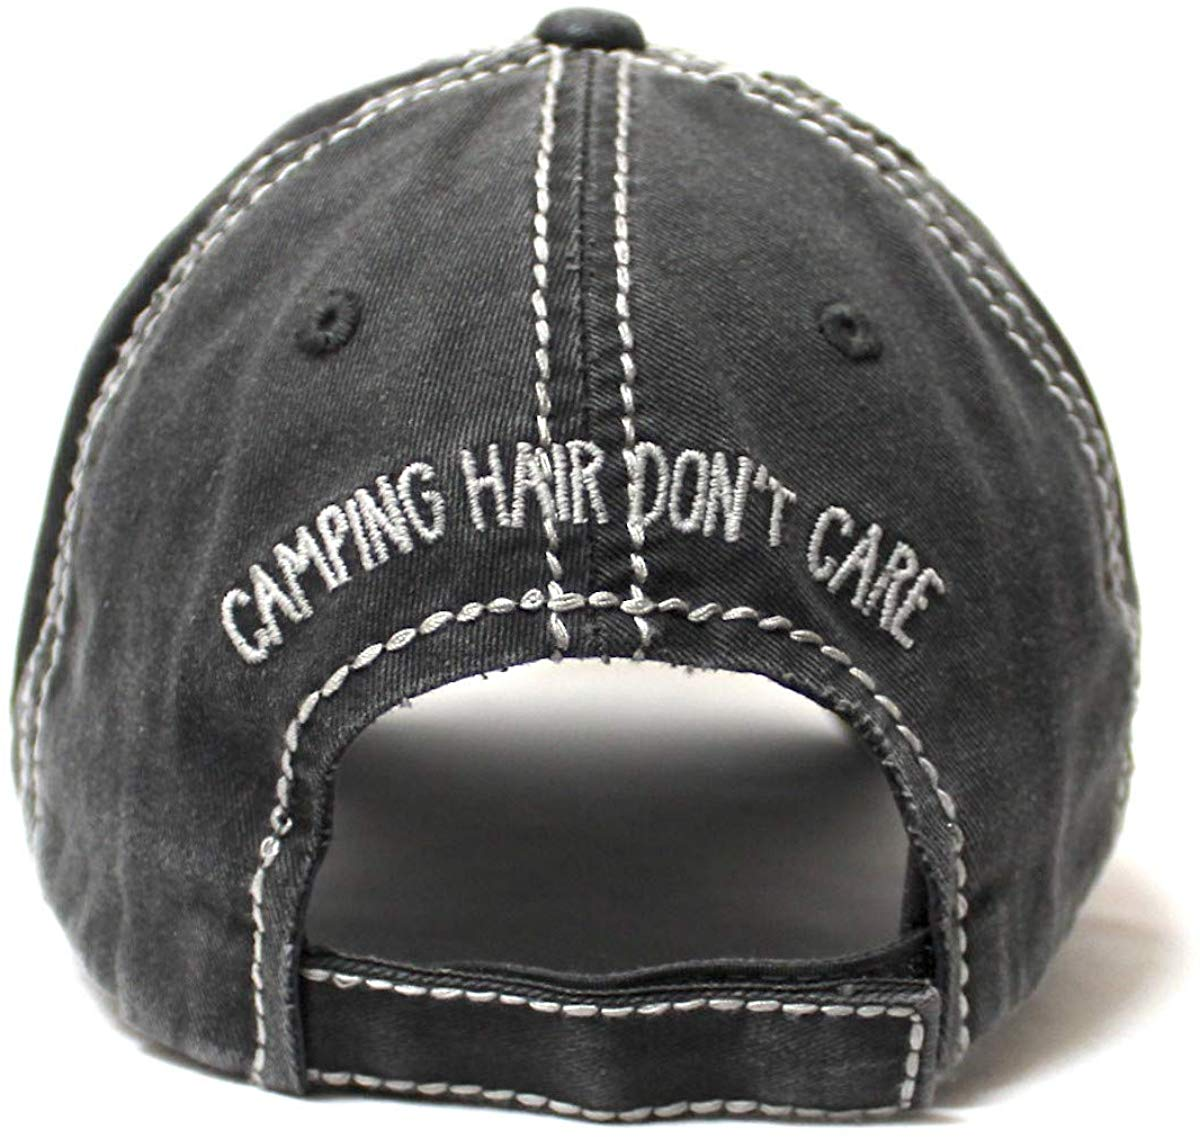 Camping Hair Don't Care Distressed Ballcap, Buffalo Plaid Patterned Truck Embroidery Adjustable Hat, Vintage Black - Caps 'N Vintage